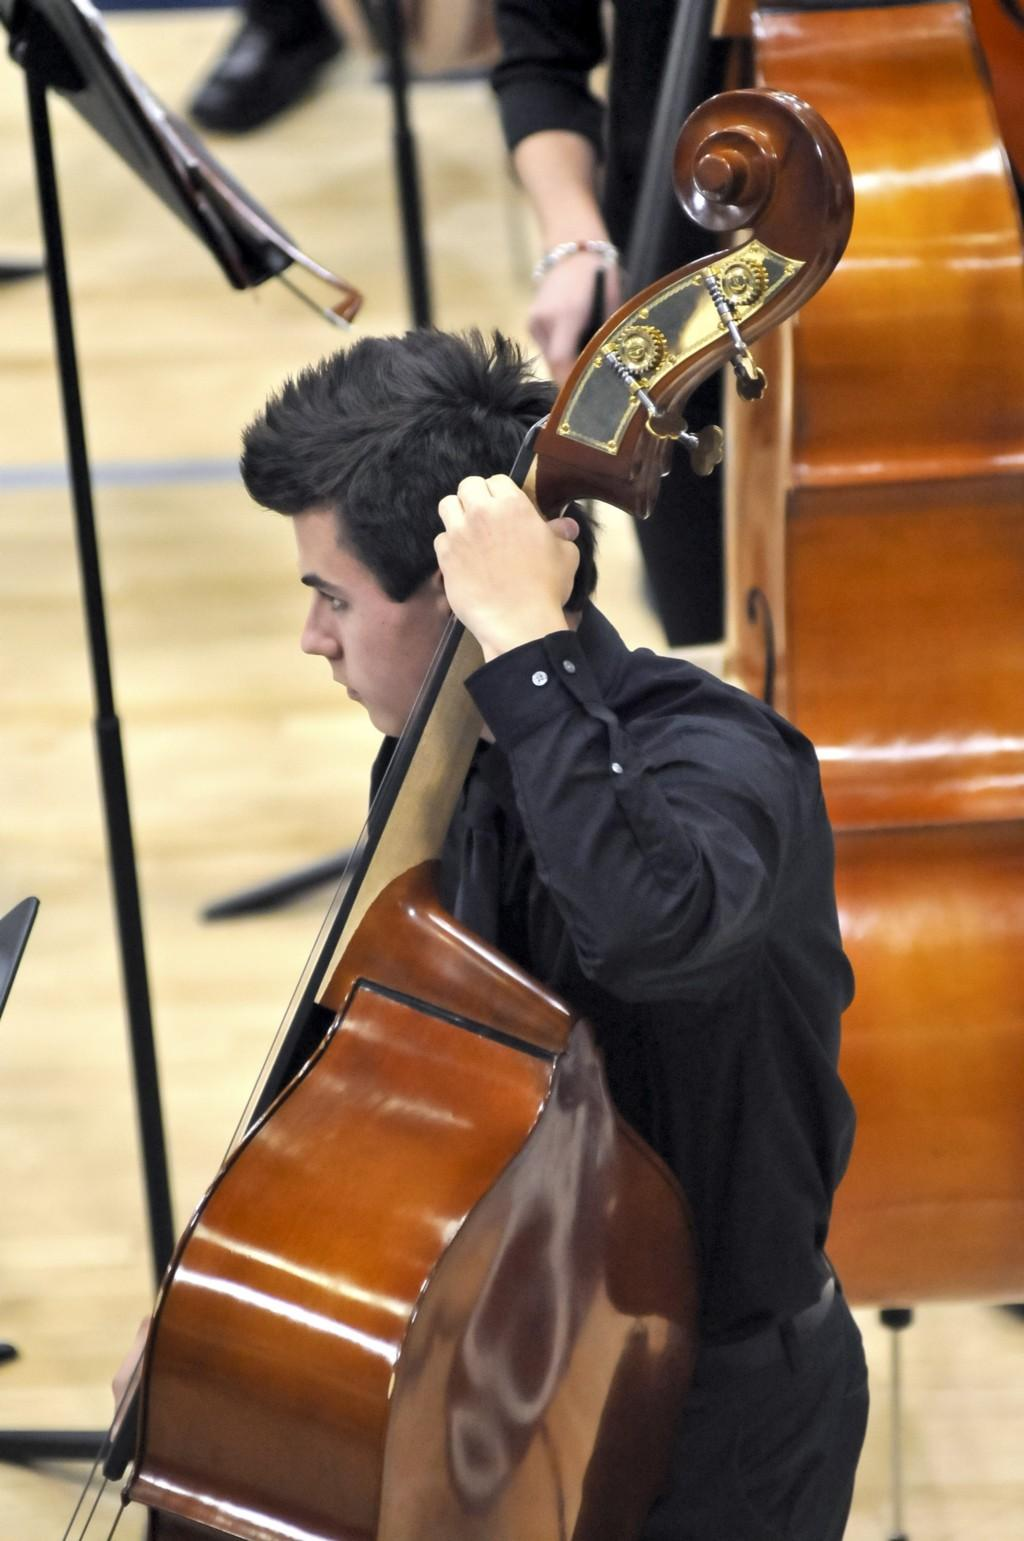 Orchestra student playing